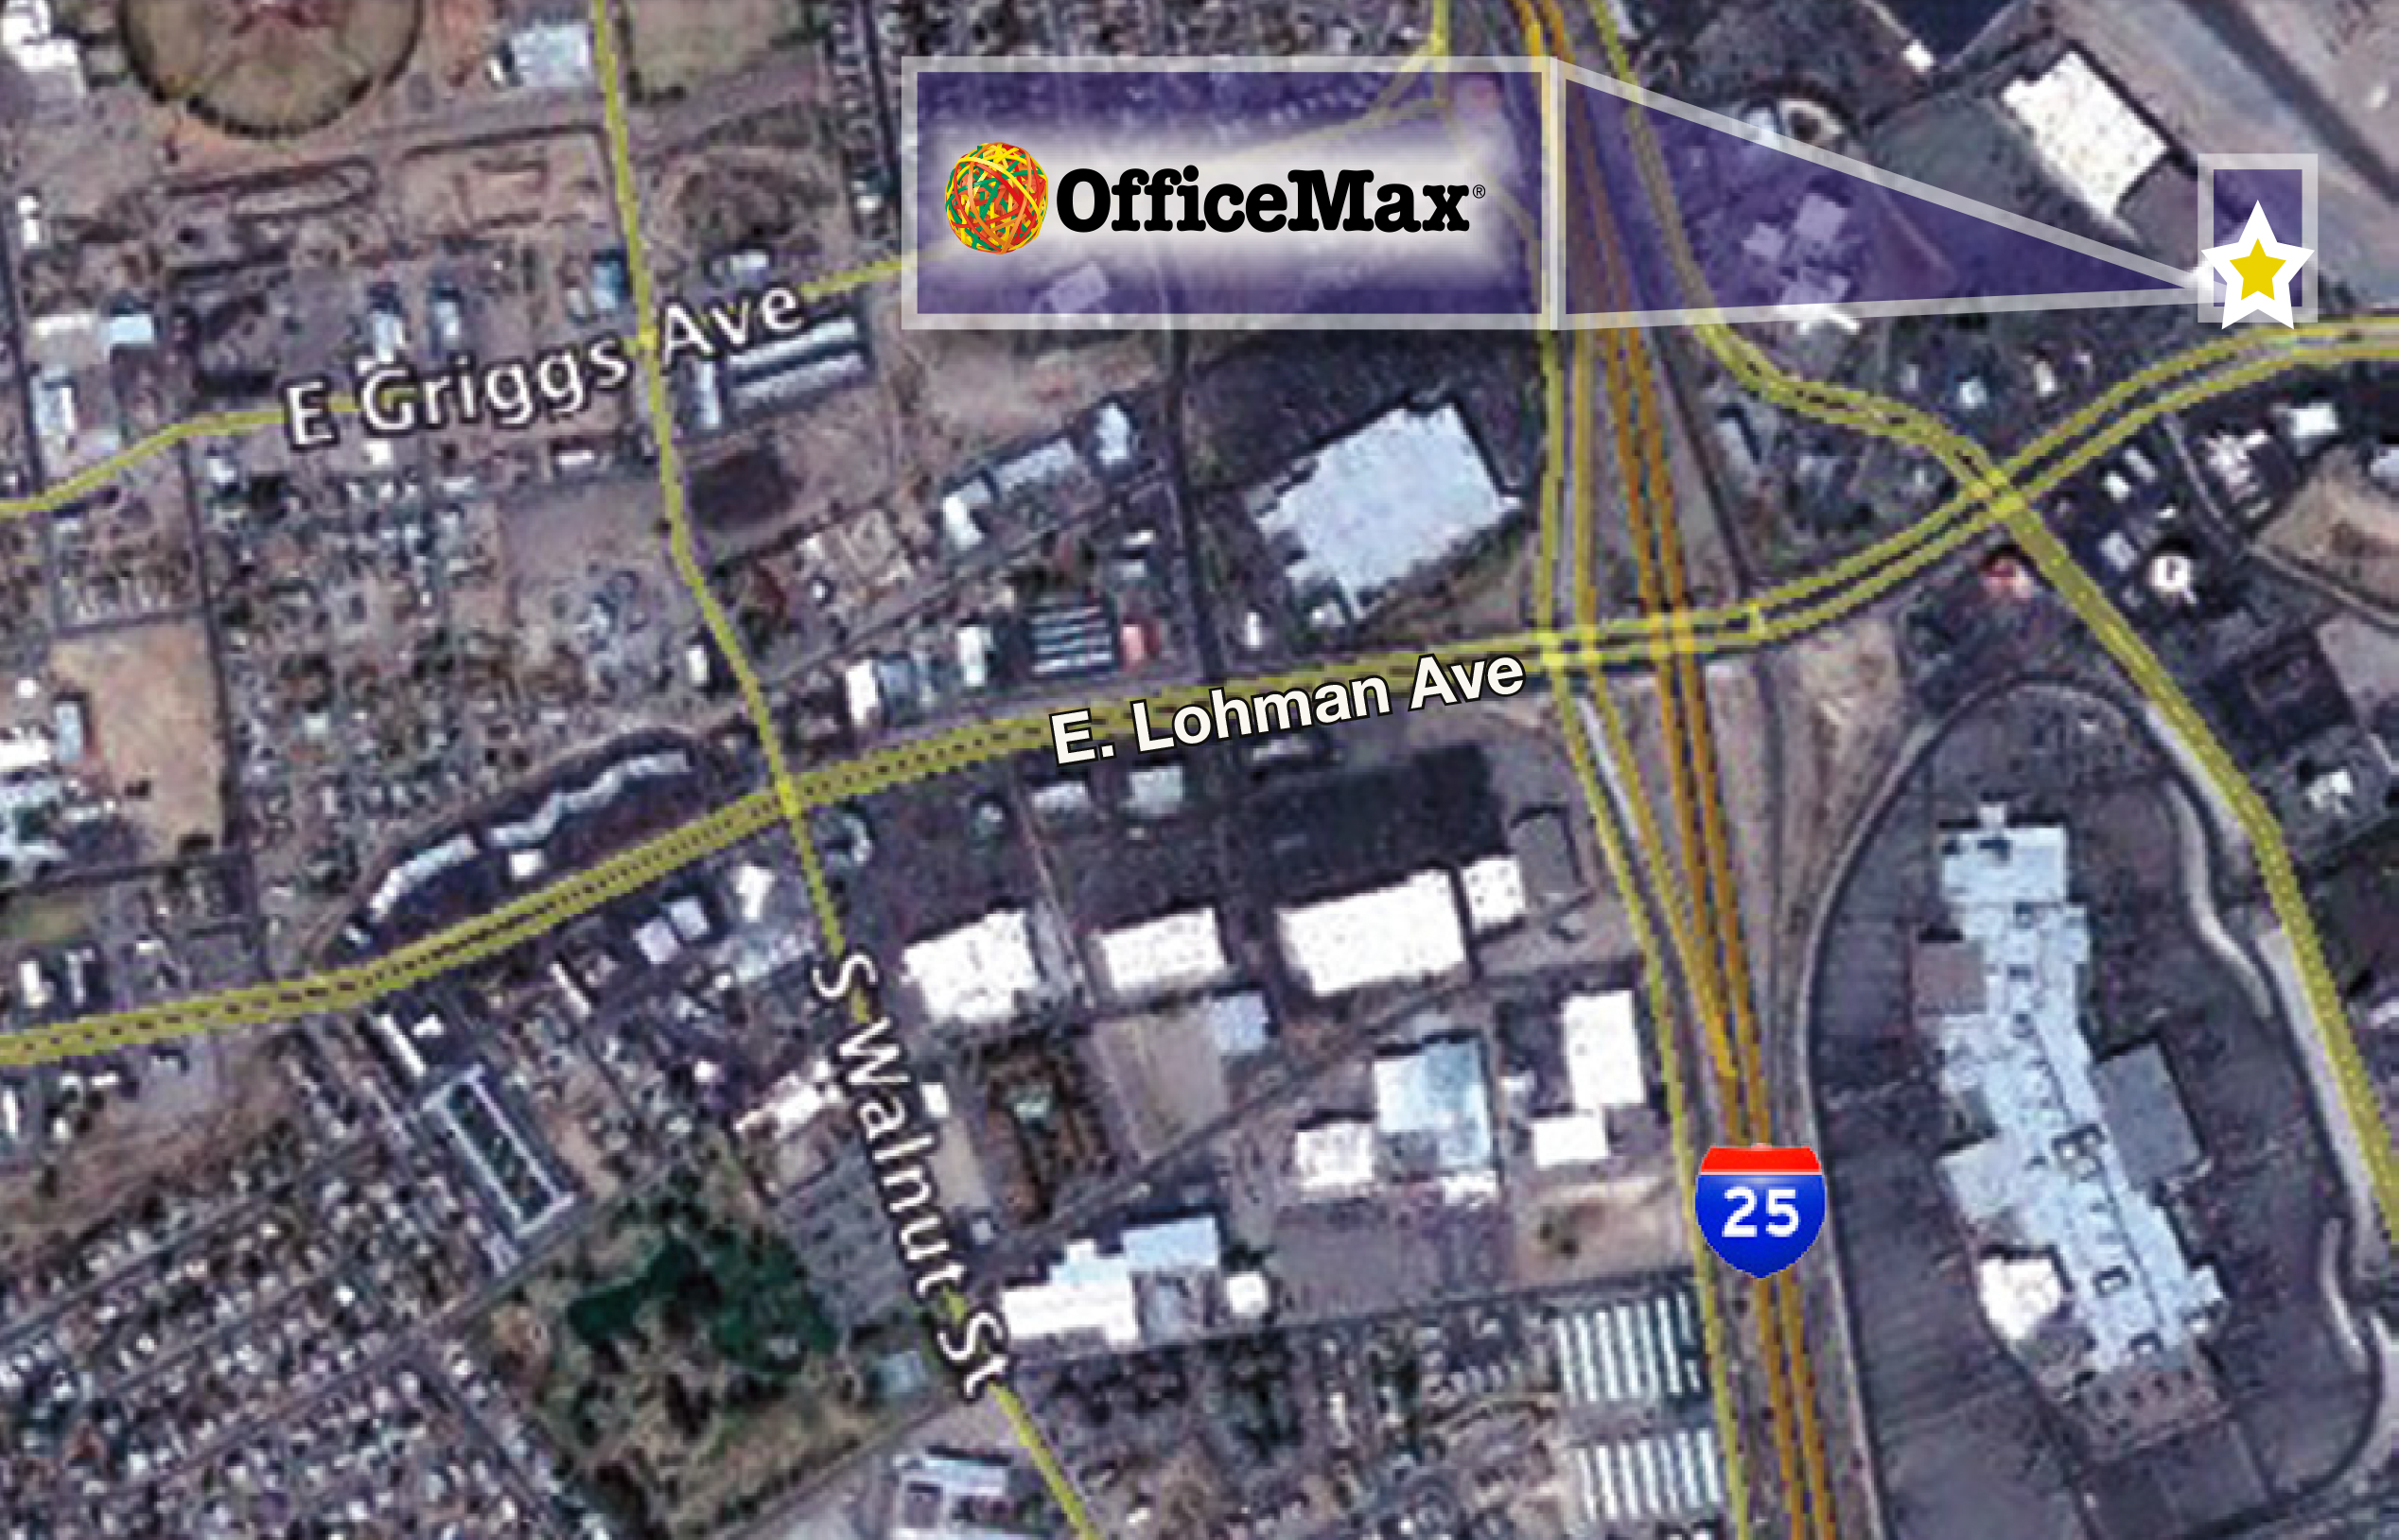 OfficeMaxLasCruces_siteplan